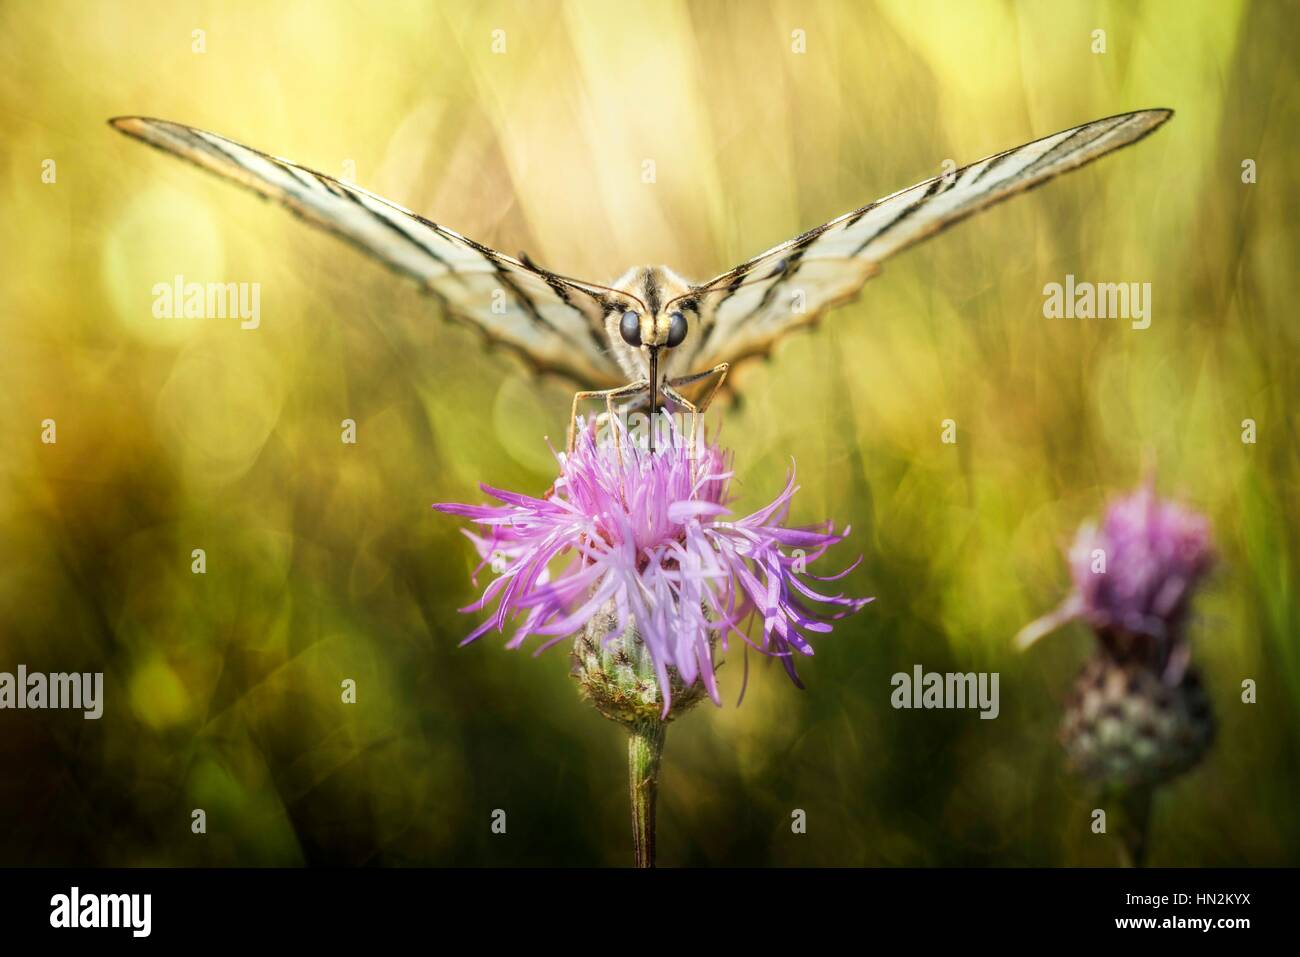 Butterfly sucking the nectar from a thistle. - Stock Image